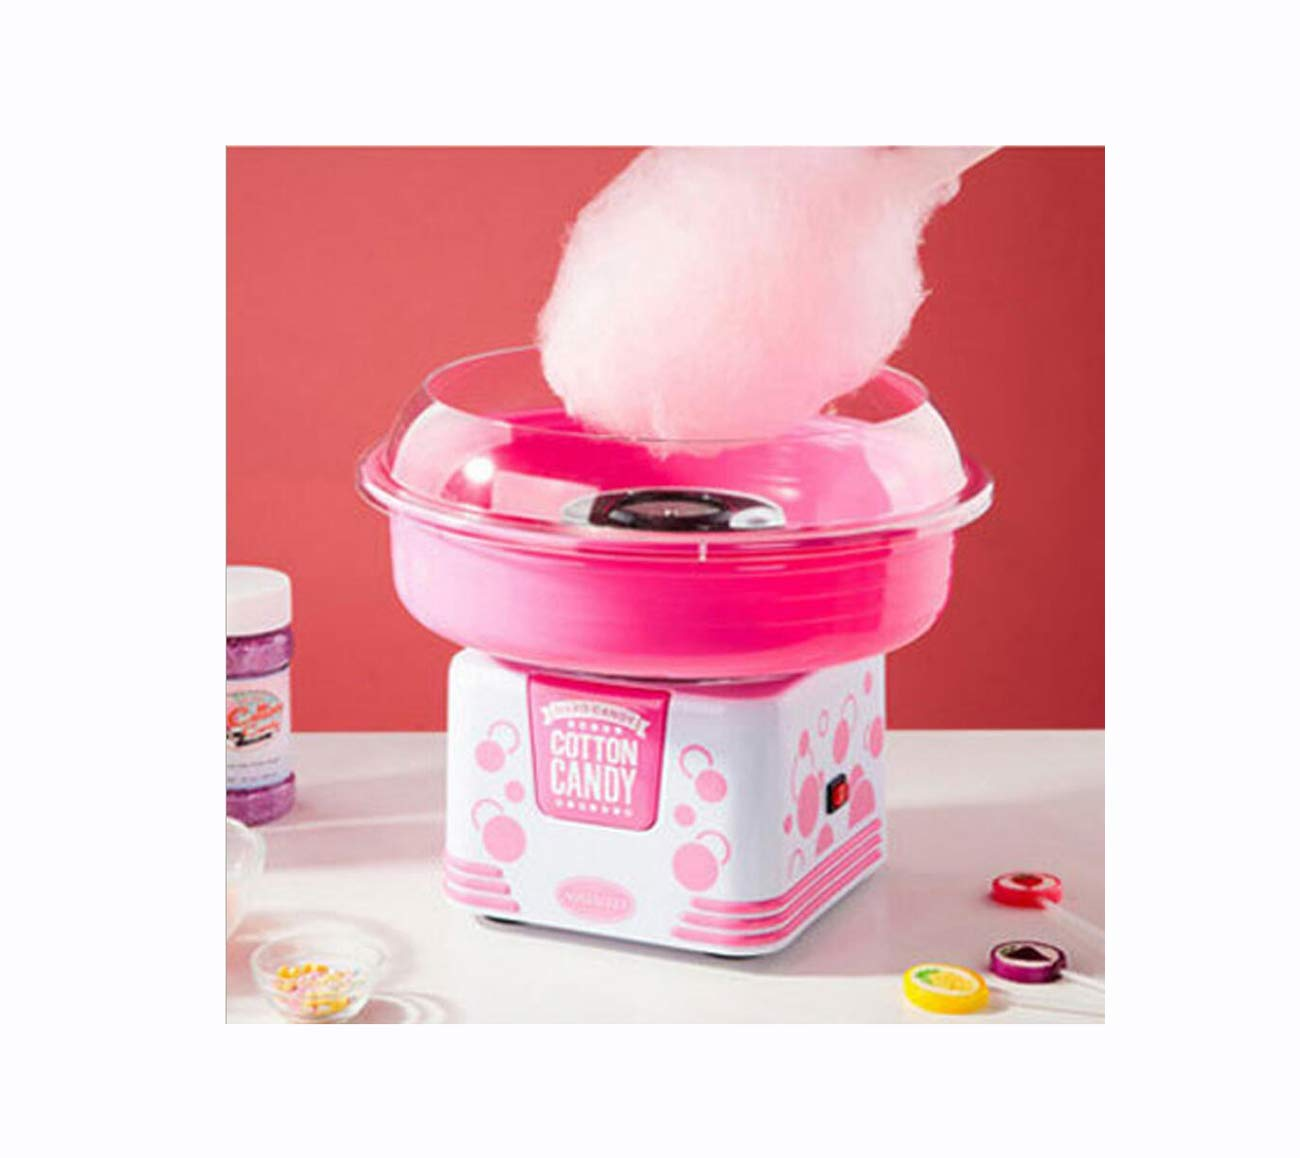 Isa Handy Candy Smart Cotton Candy Maker, Pink/Red,Pink